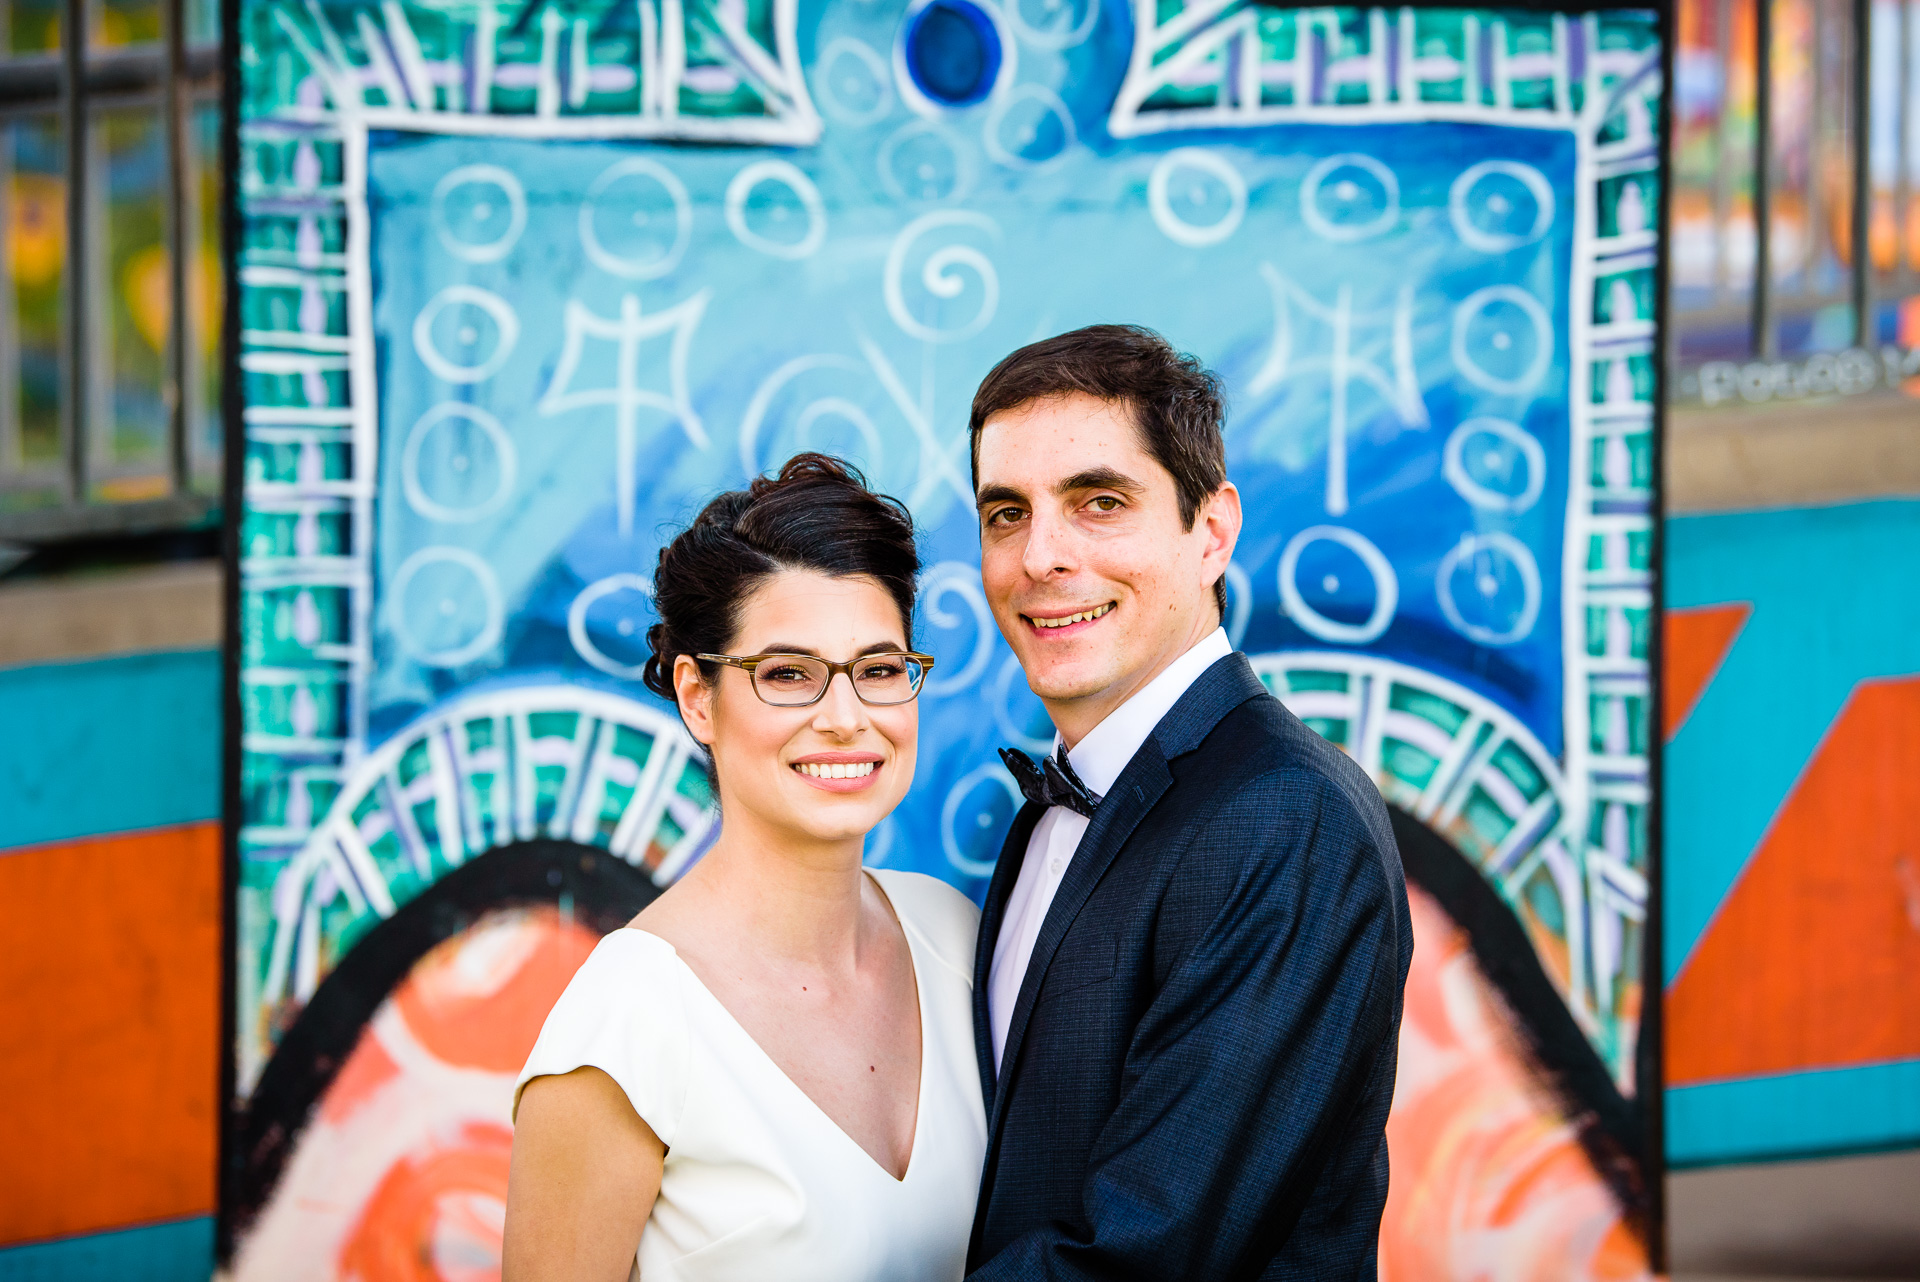 12.29.17 - Michelle and Tommaso Wedding - San Diego Courthouse -  Paul Douda Photography - 034.jpg